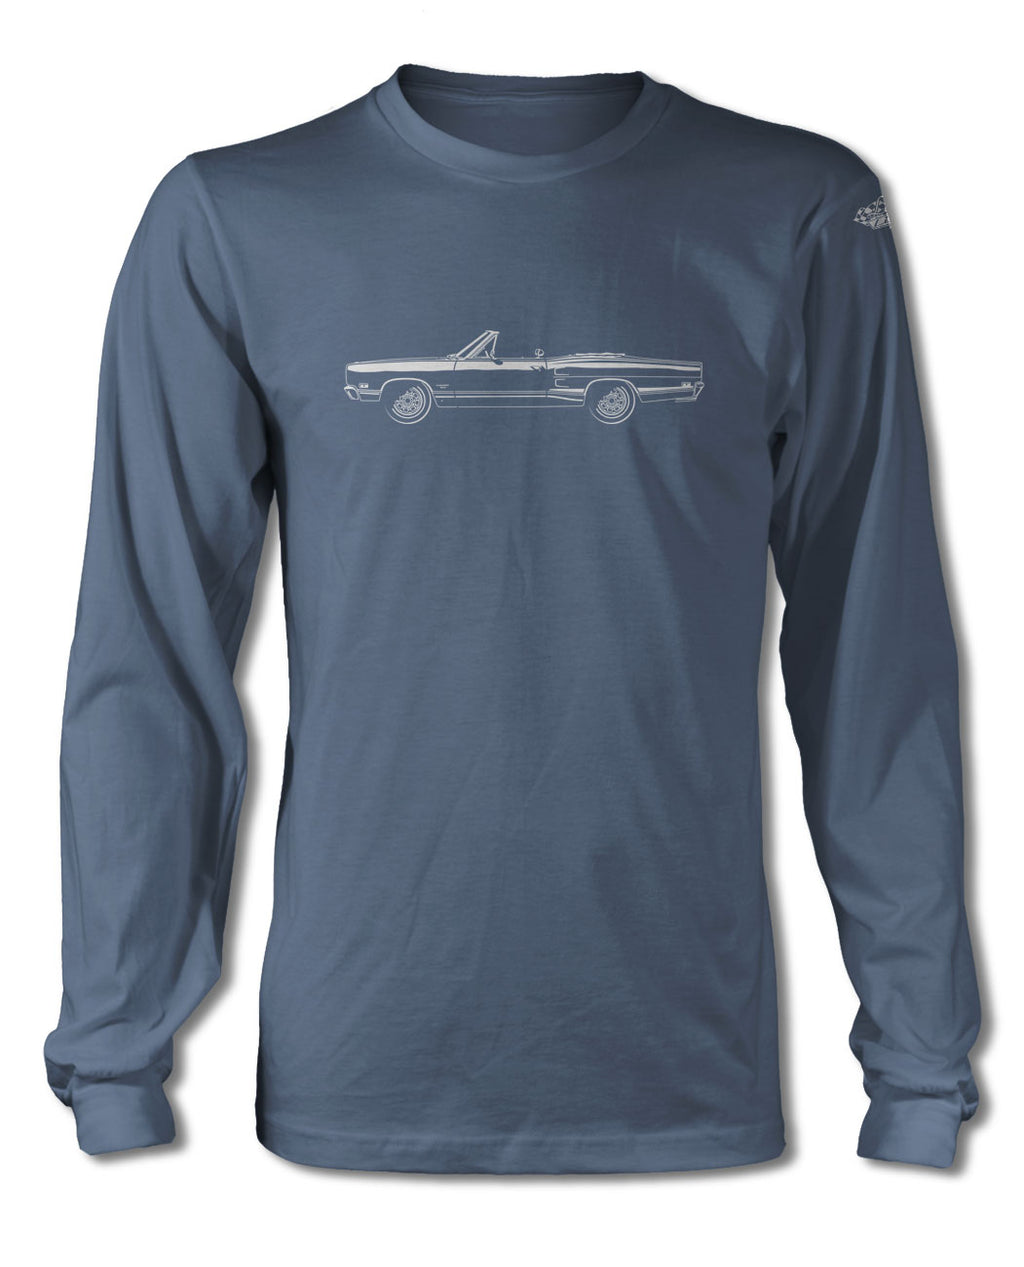 1969 Dodge Coronet 500 Convertible T-Shirt - Long Sleeves - Side View